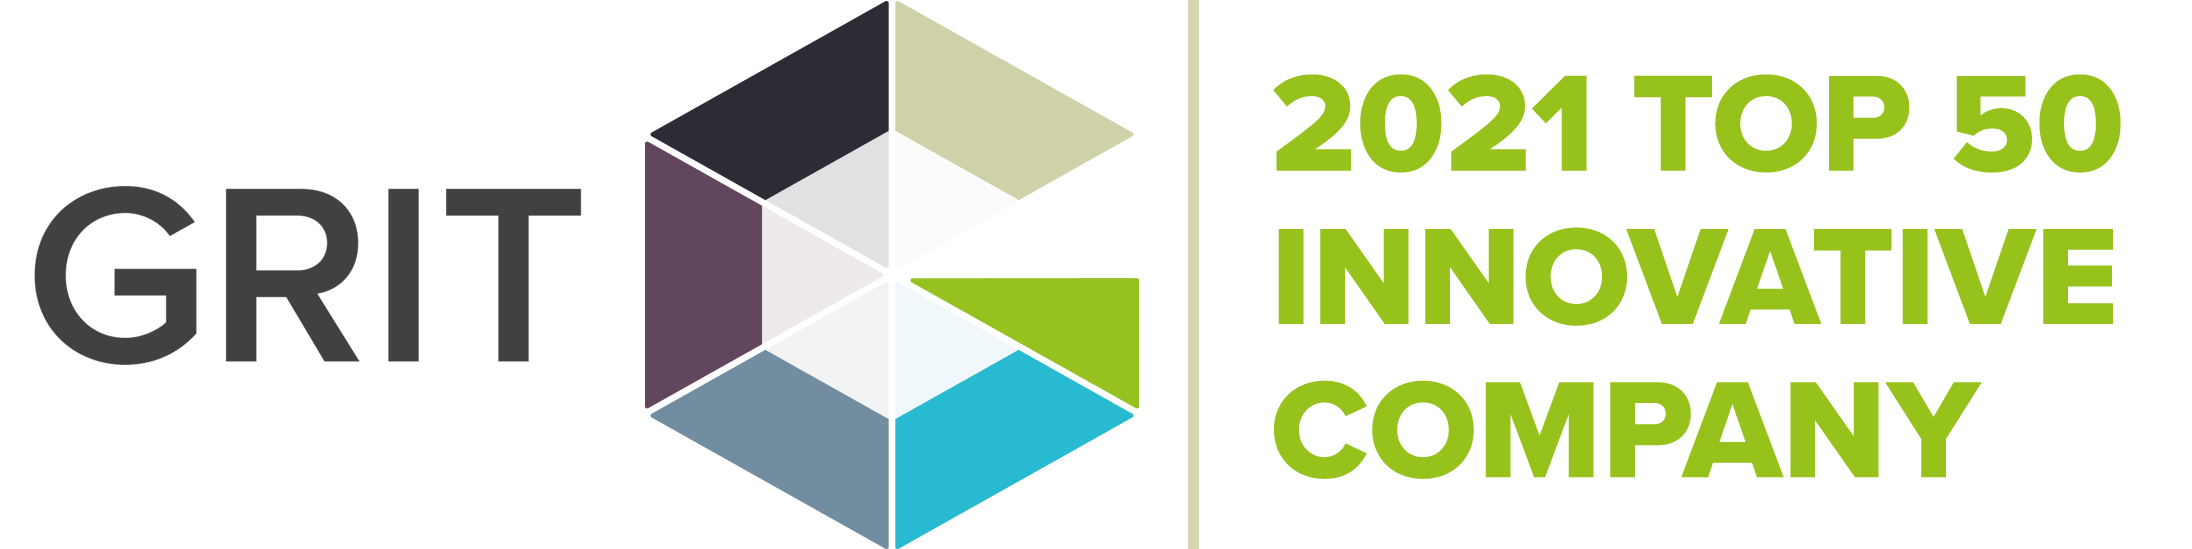 Methodify by Delvinia was awarded the 2021 Top 50 Innovative Company by GRIT